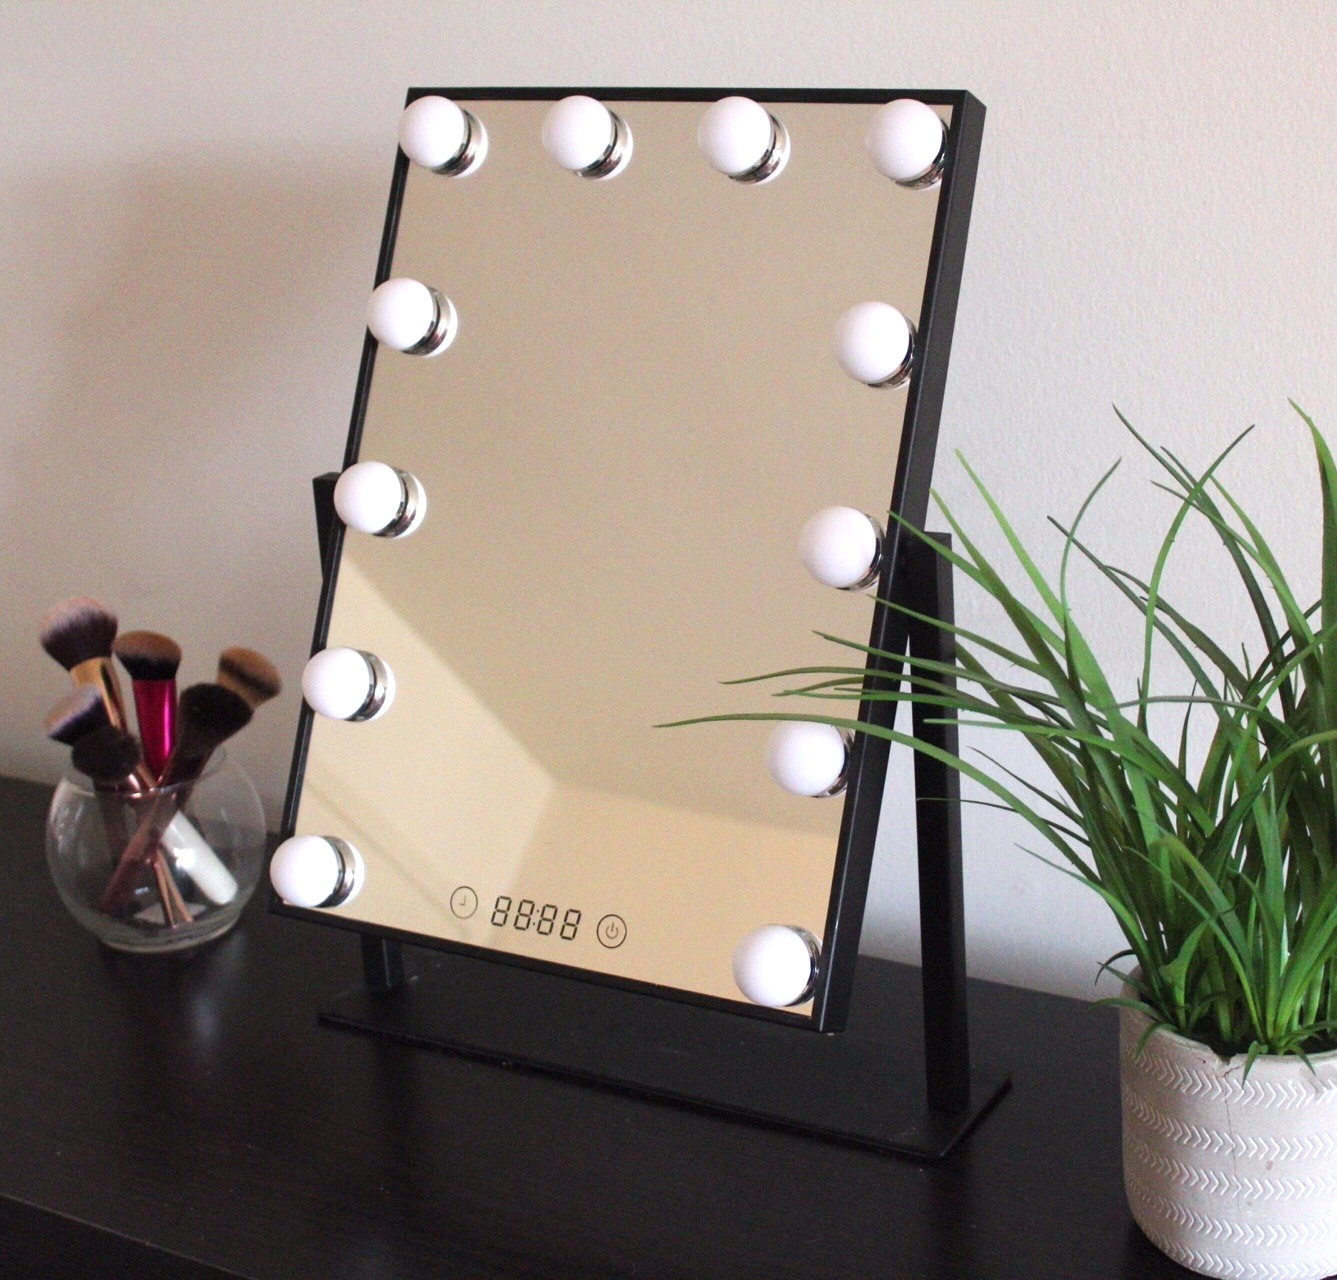 lighting applying makeup, vanity mirror, estala, estala skin care, estala mirror, Hollywood vanity mirror, lighted mirror